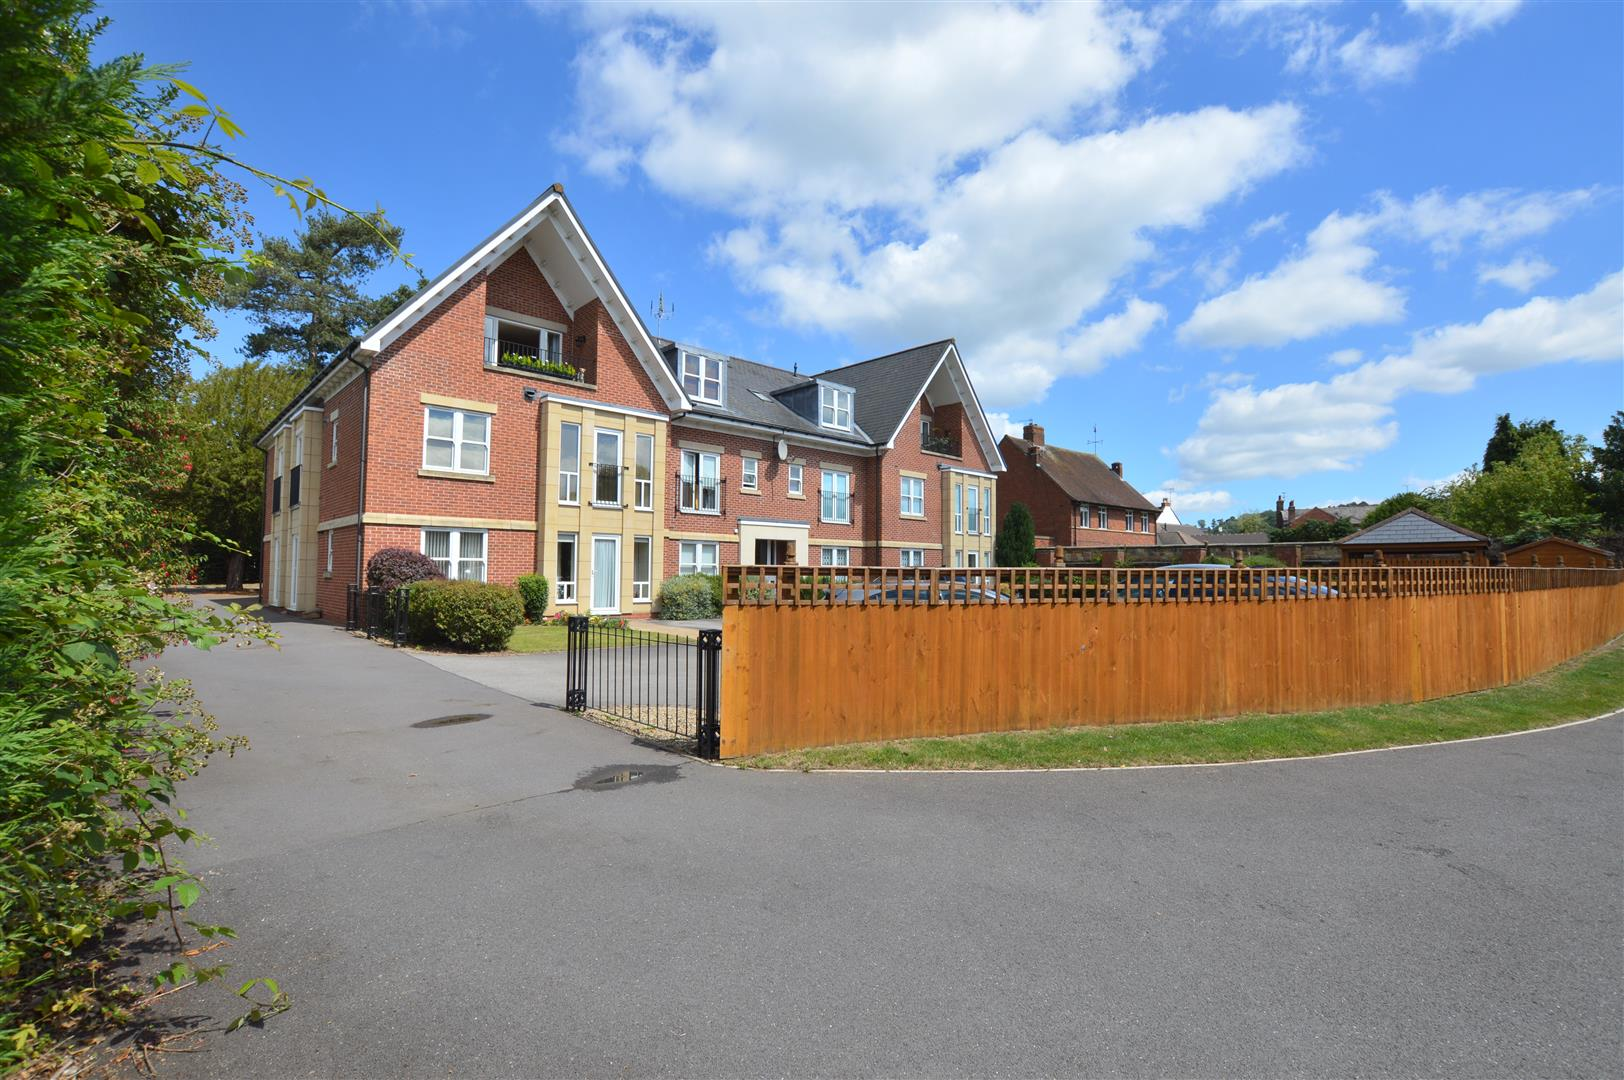 2 Bedroom Apartment For Sale In Belper